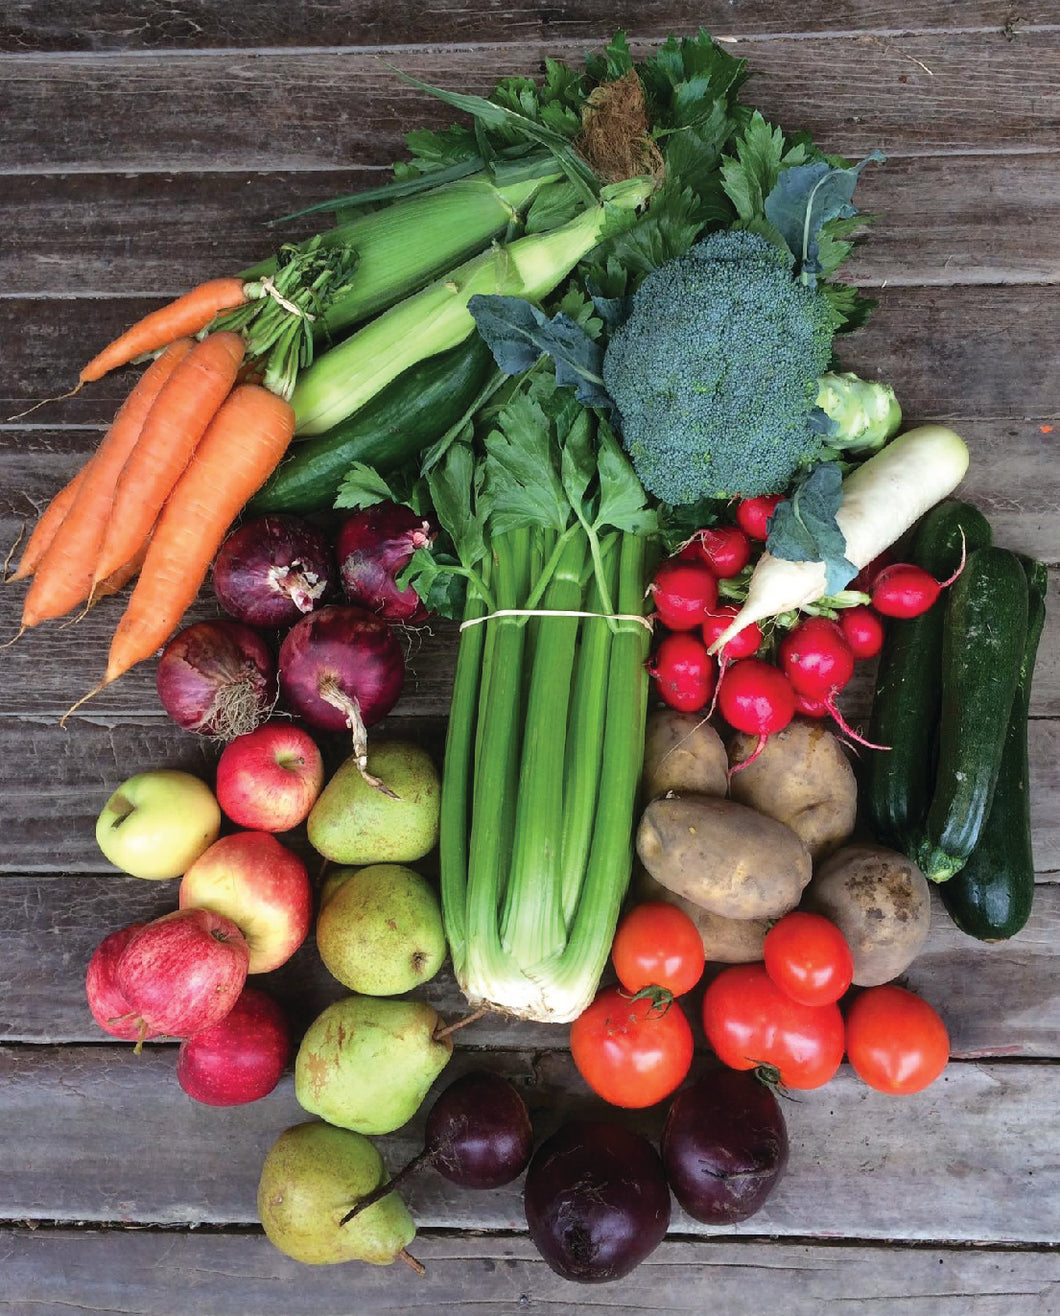 Large Veg and Fruit - Seasonal Organic Box